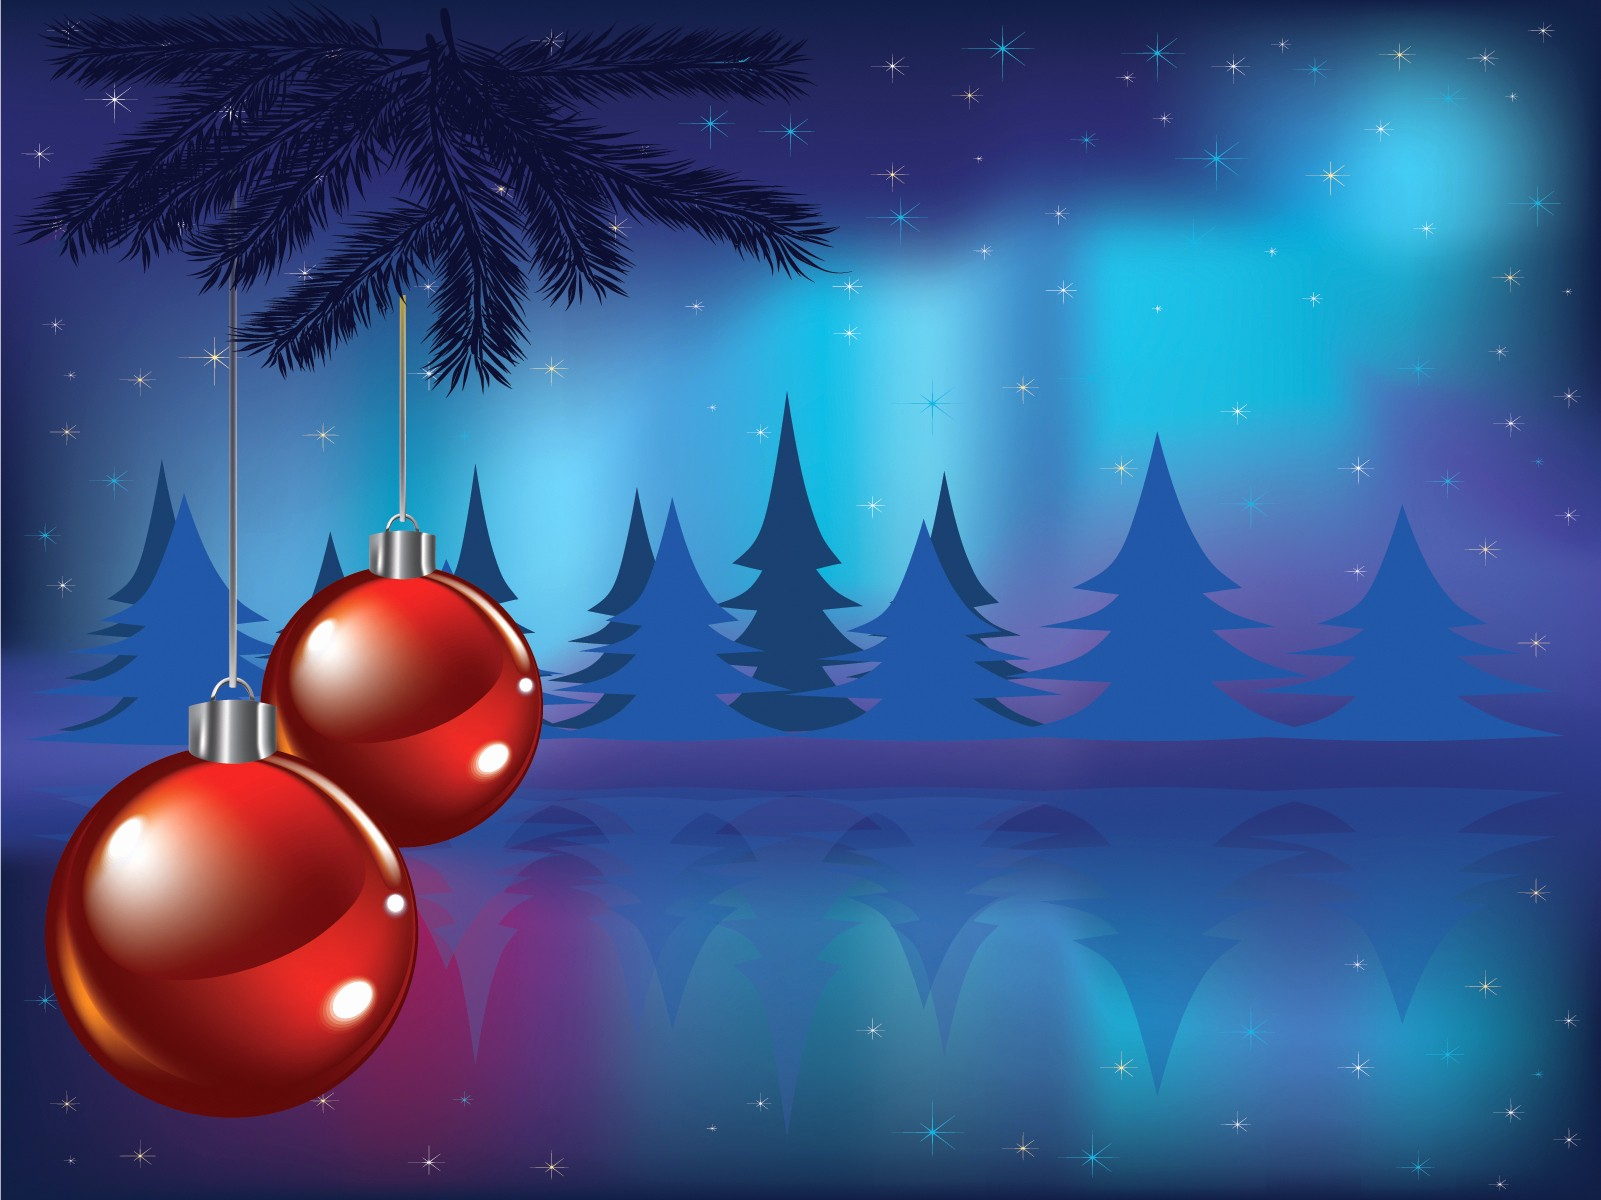 Christmas Background Images for Word Unique Christmas Card Powerpoint Templates Blue Christmas